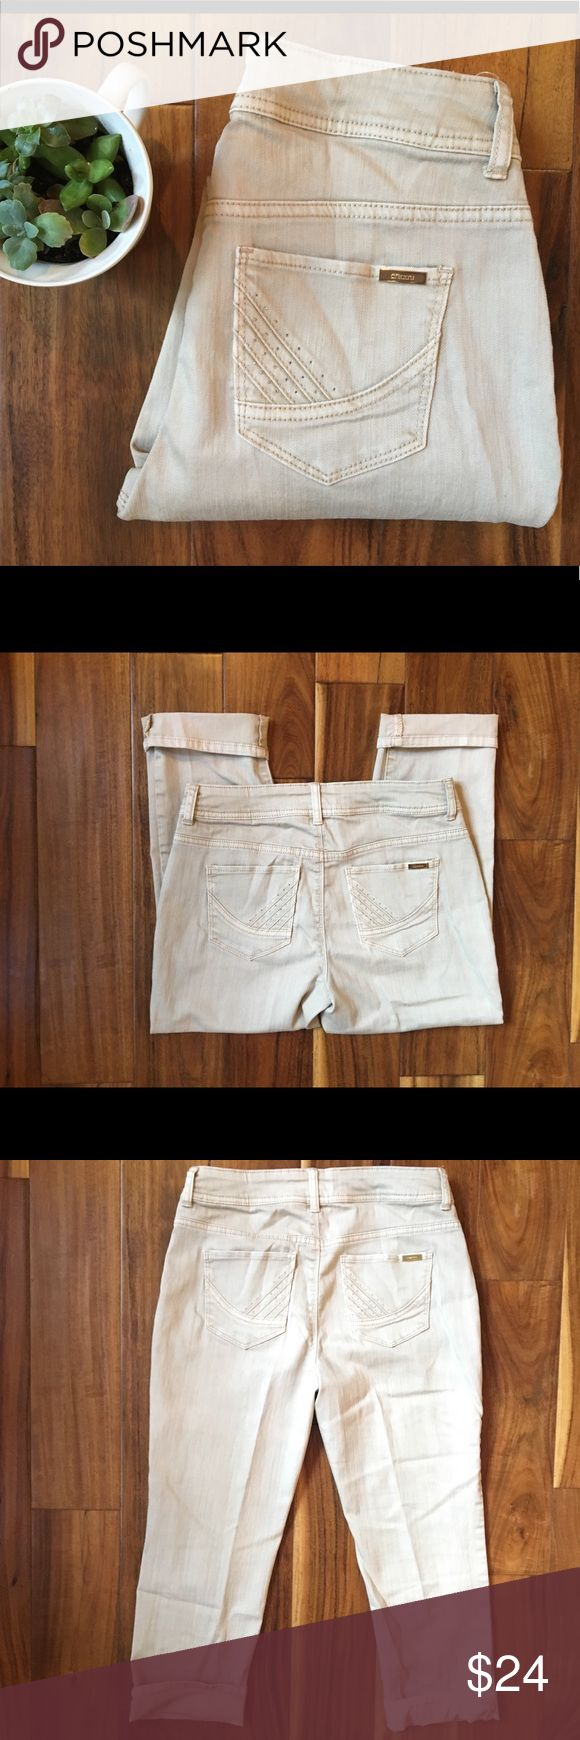 Chicos Jeans - Cream Crop Leg These are mid calf length and stretchy without stretching too much! Great quality and never before worn. These pants were my mother's and she normally wears a 28 or 6/8 in jeans so this 00 size is deceptive! Very flattering! Chico's Jeans Ankle & Cropped